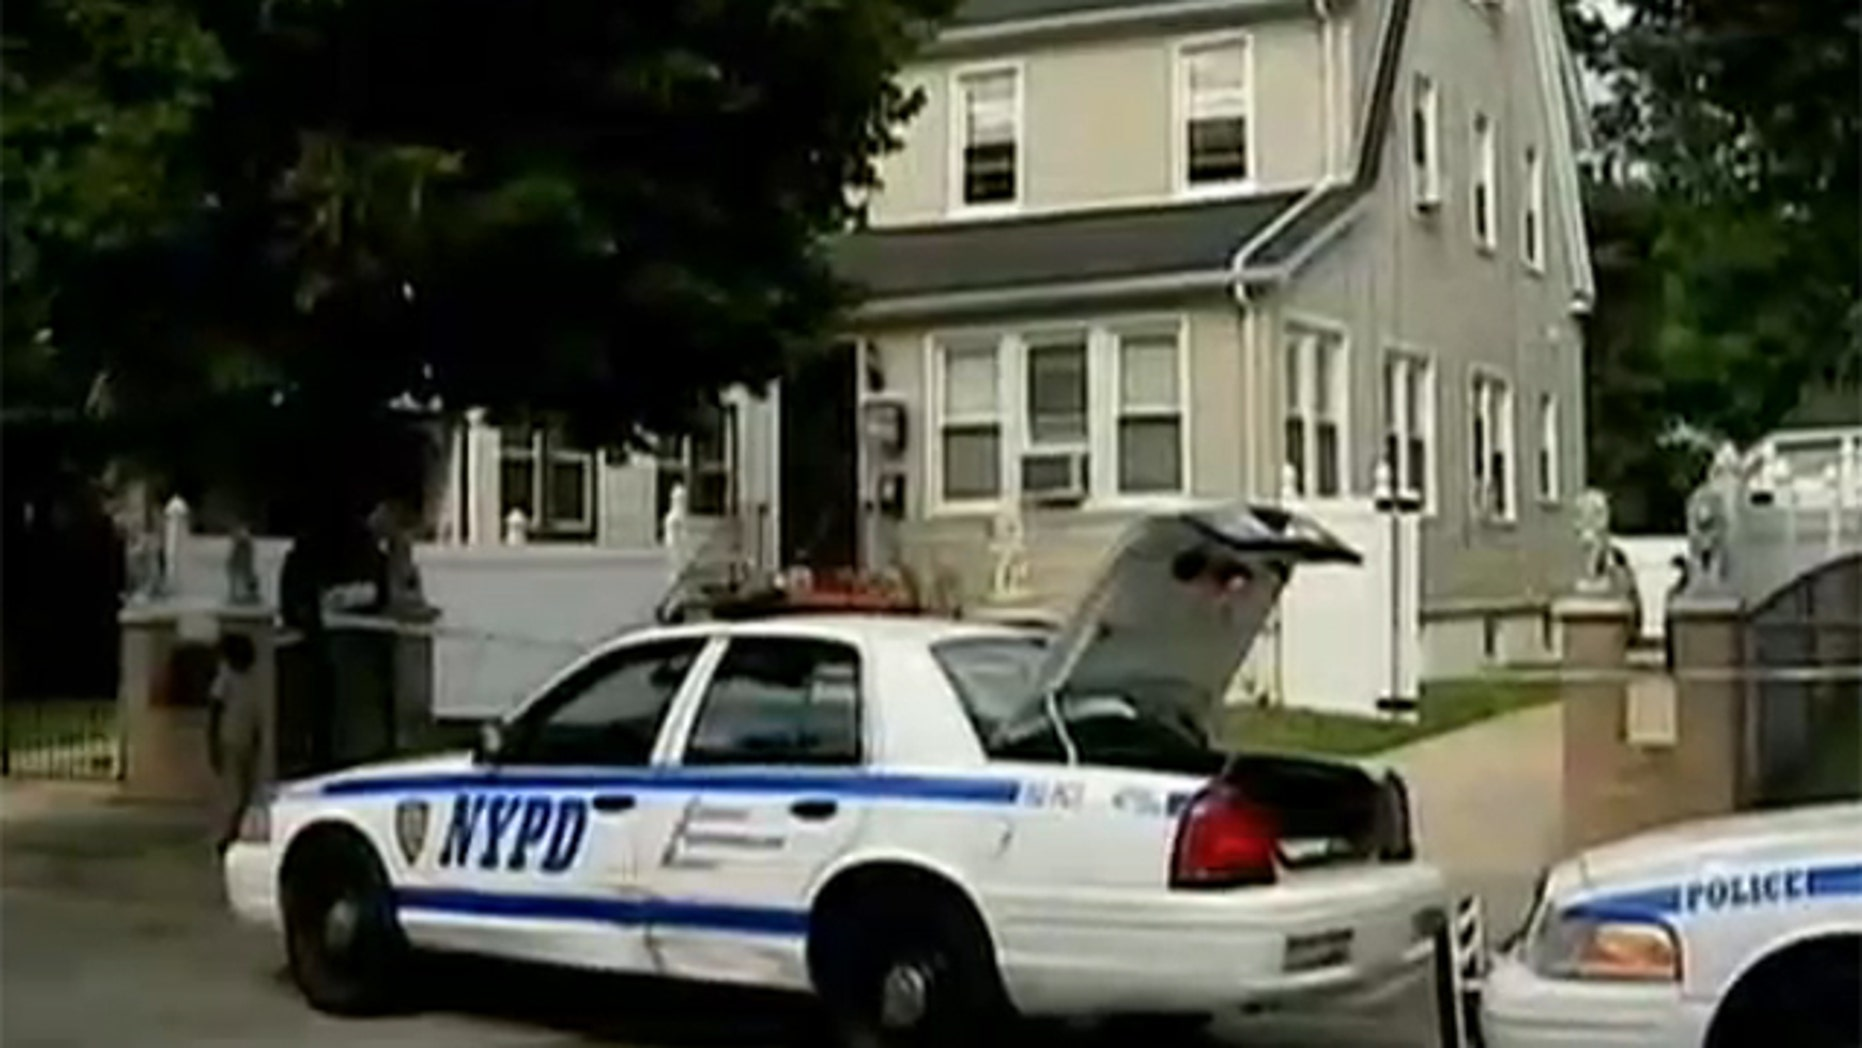 July 27, 2012: Detectives sit outside a home.